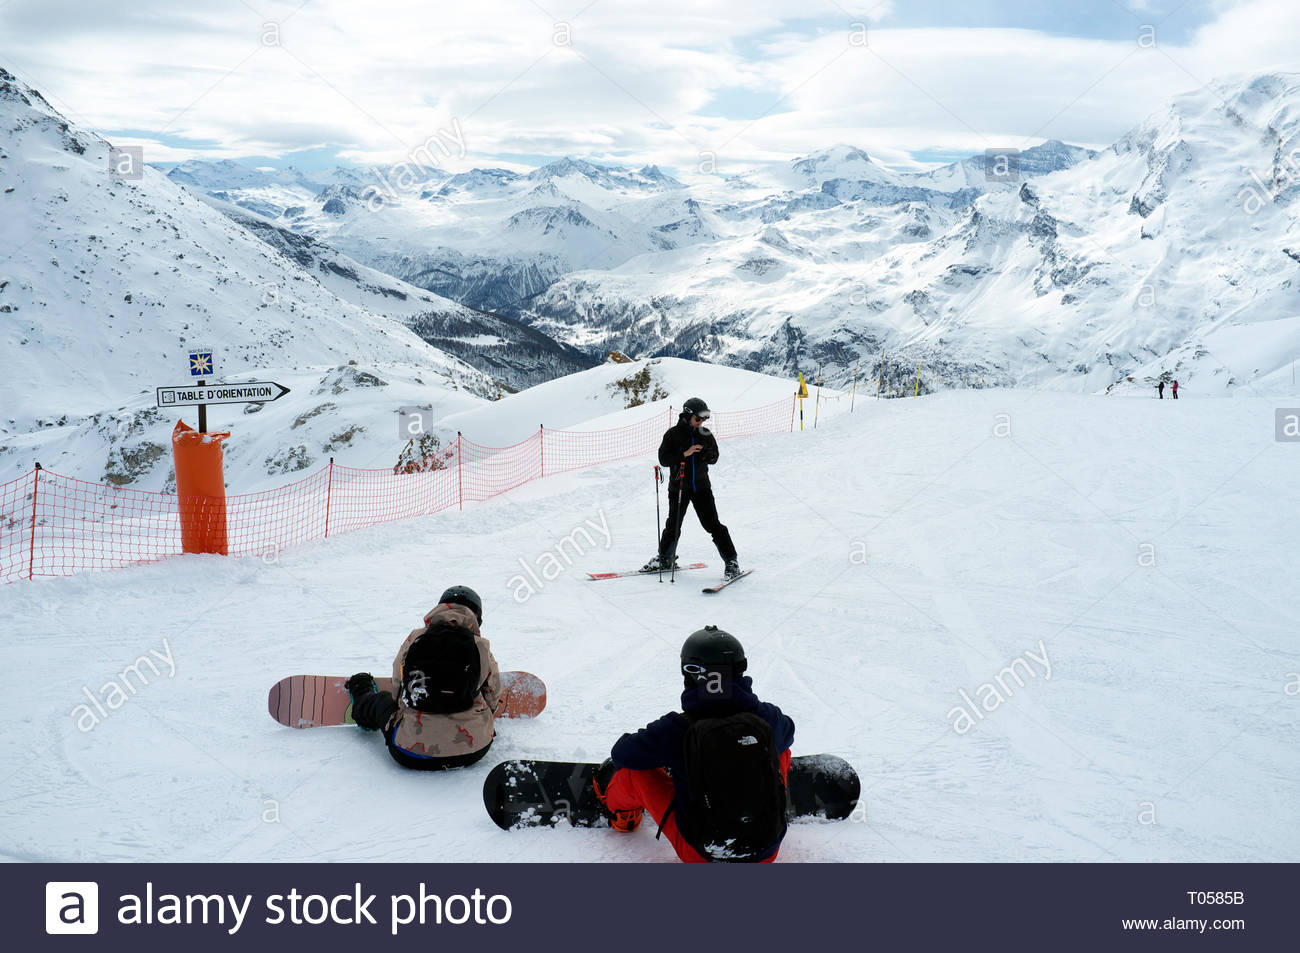 A skier and two snowboarders get ready to descend from the Sommet Aiguille, at the ski resort in Sainte-Foy-Tarentaise, Auvergne-Rhône-Alpes region in Stock Photo